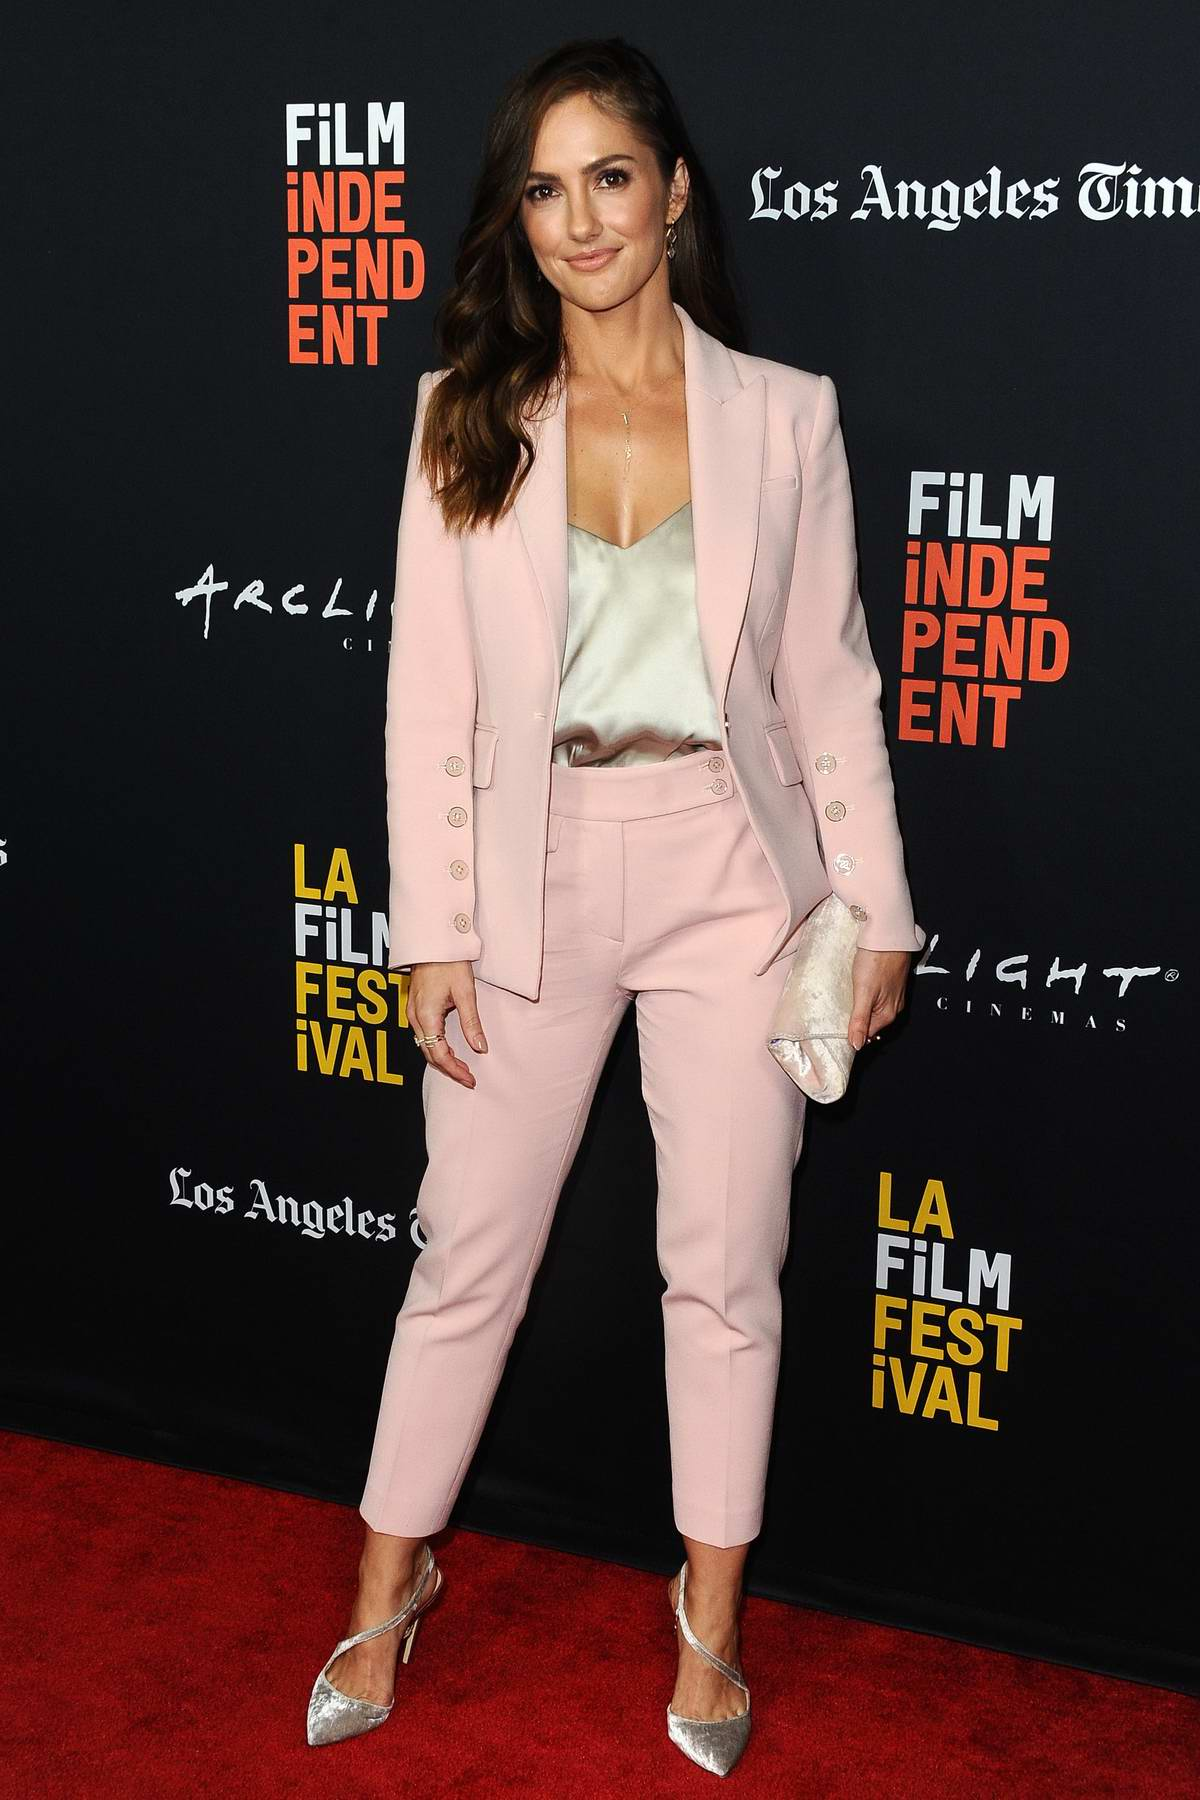 Minka Kelly attends Los Angeles Film Festival closing night premiere of 'Nomis' at the Arclight Theater in Los Angeles